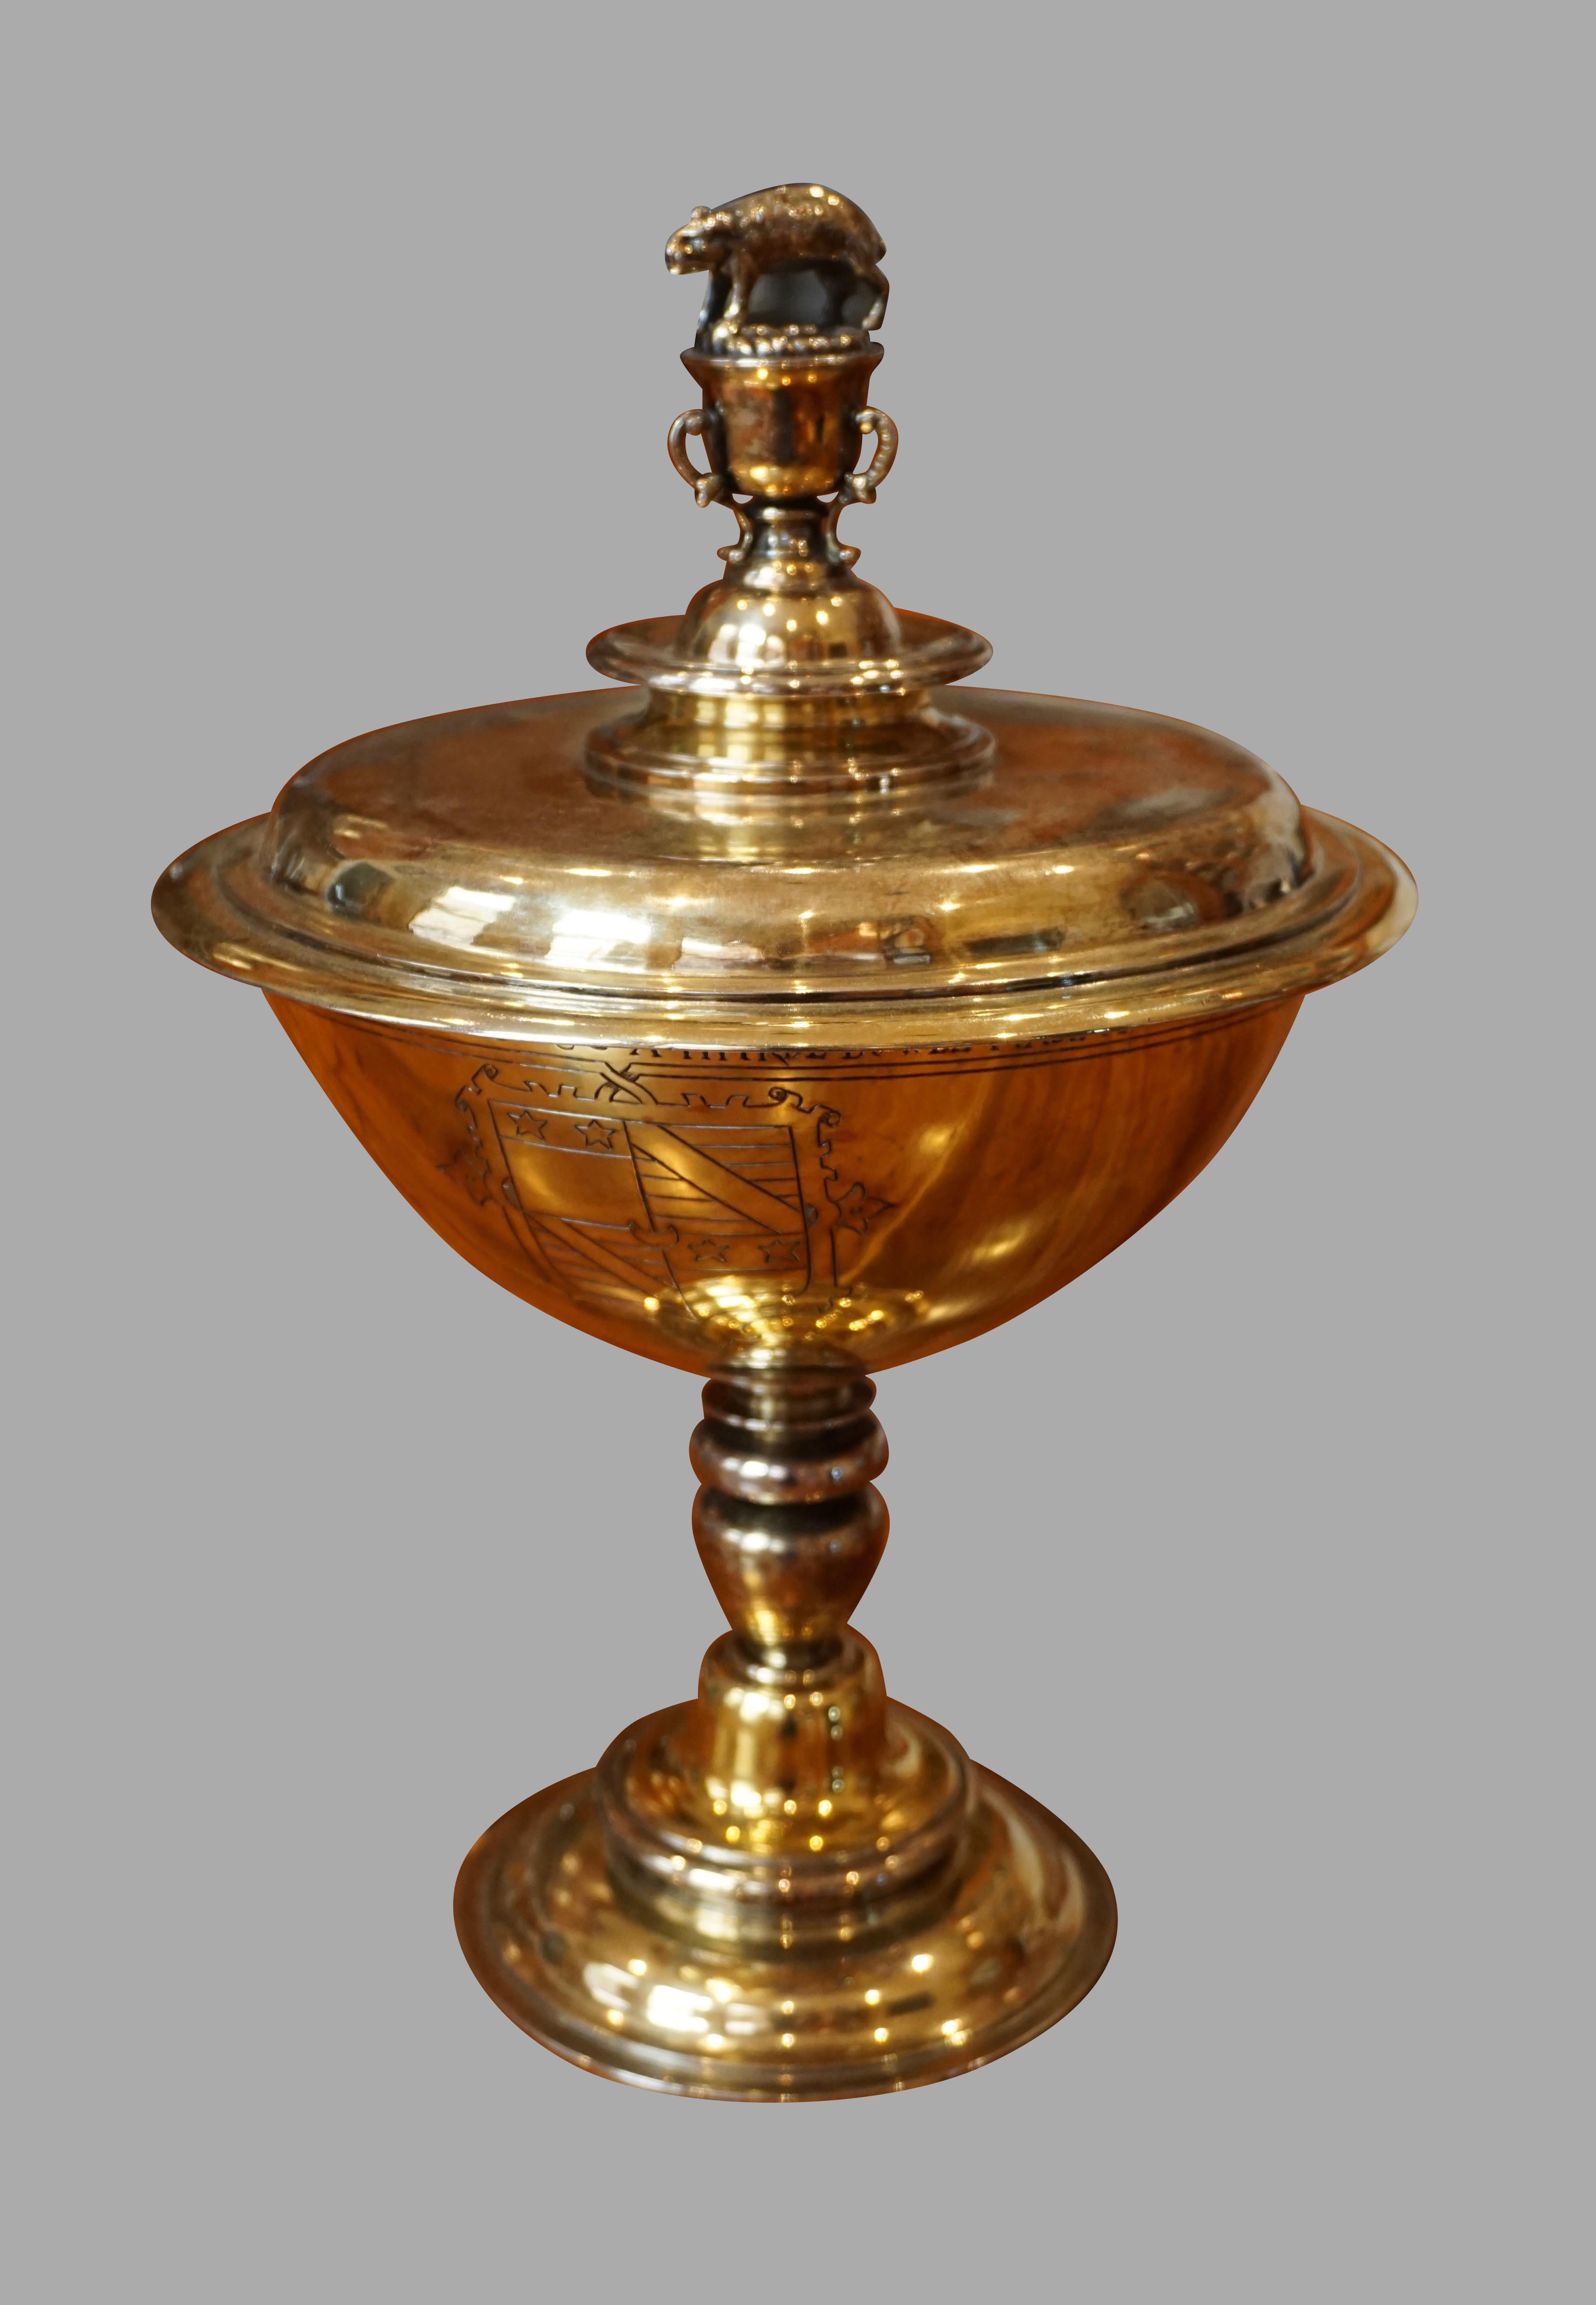 Edwardian Silver Gilt Replica of the Elizabethan Bacon Cup | DANIEL STEIN Antiques San Francisco CA